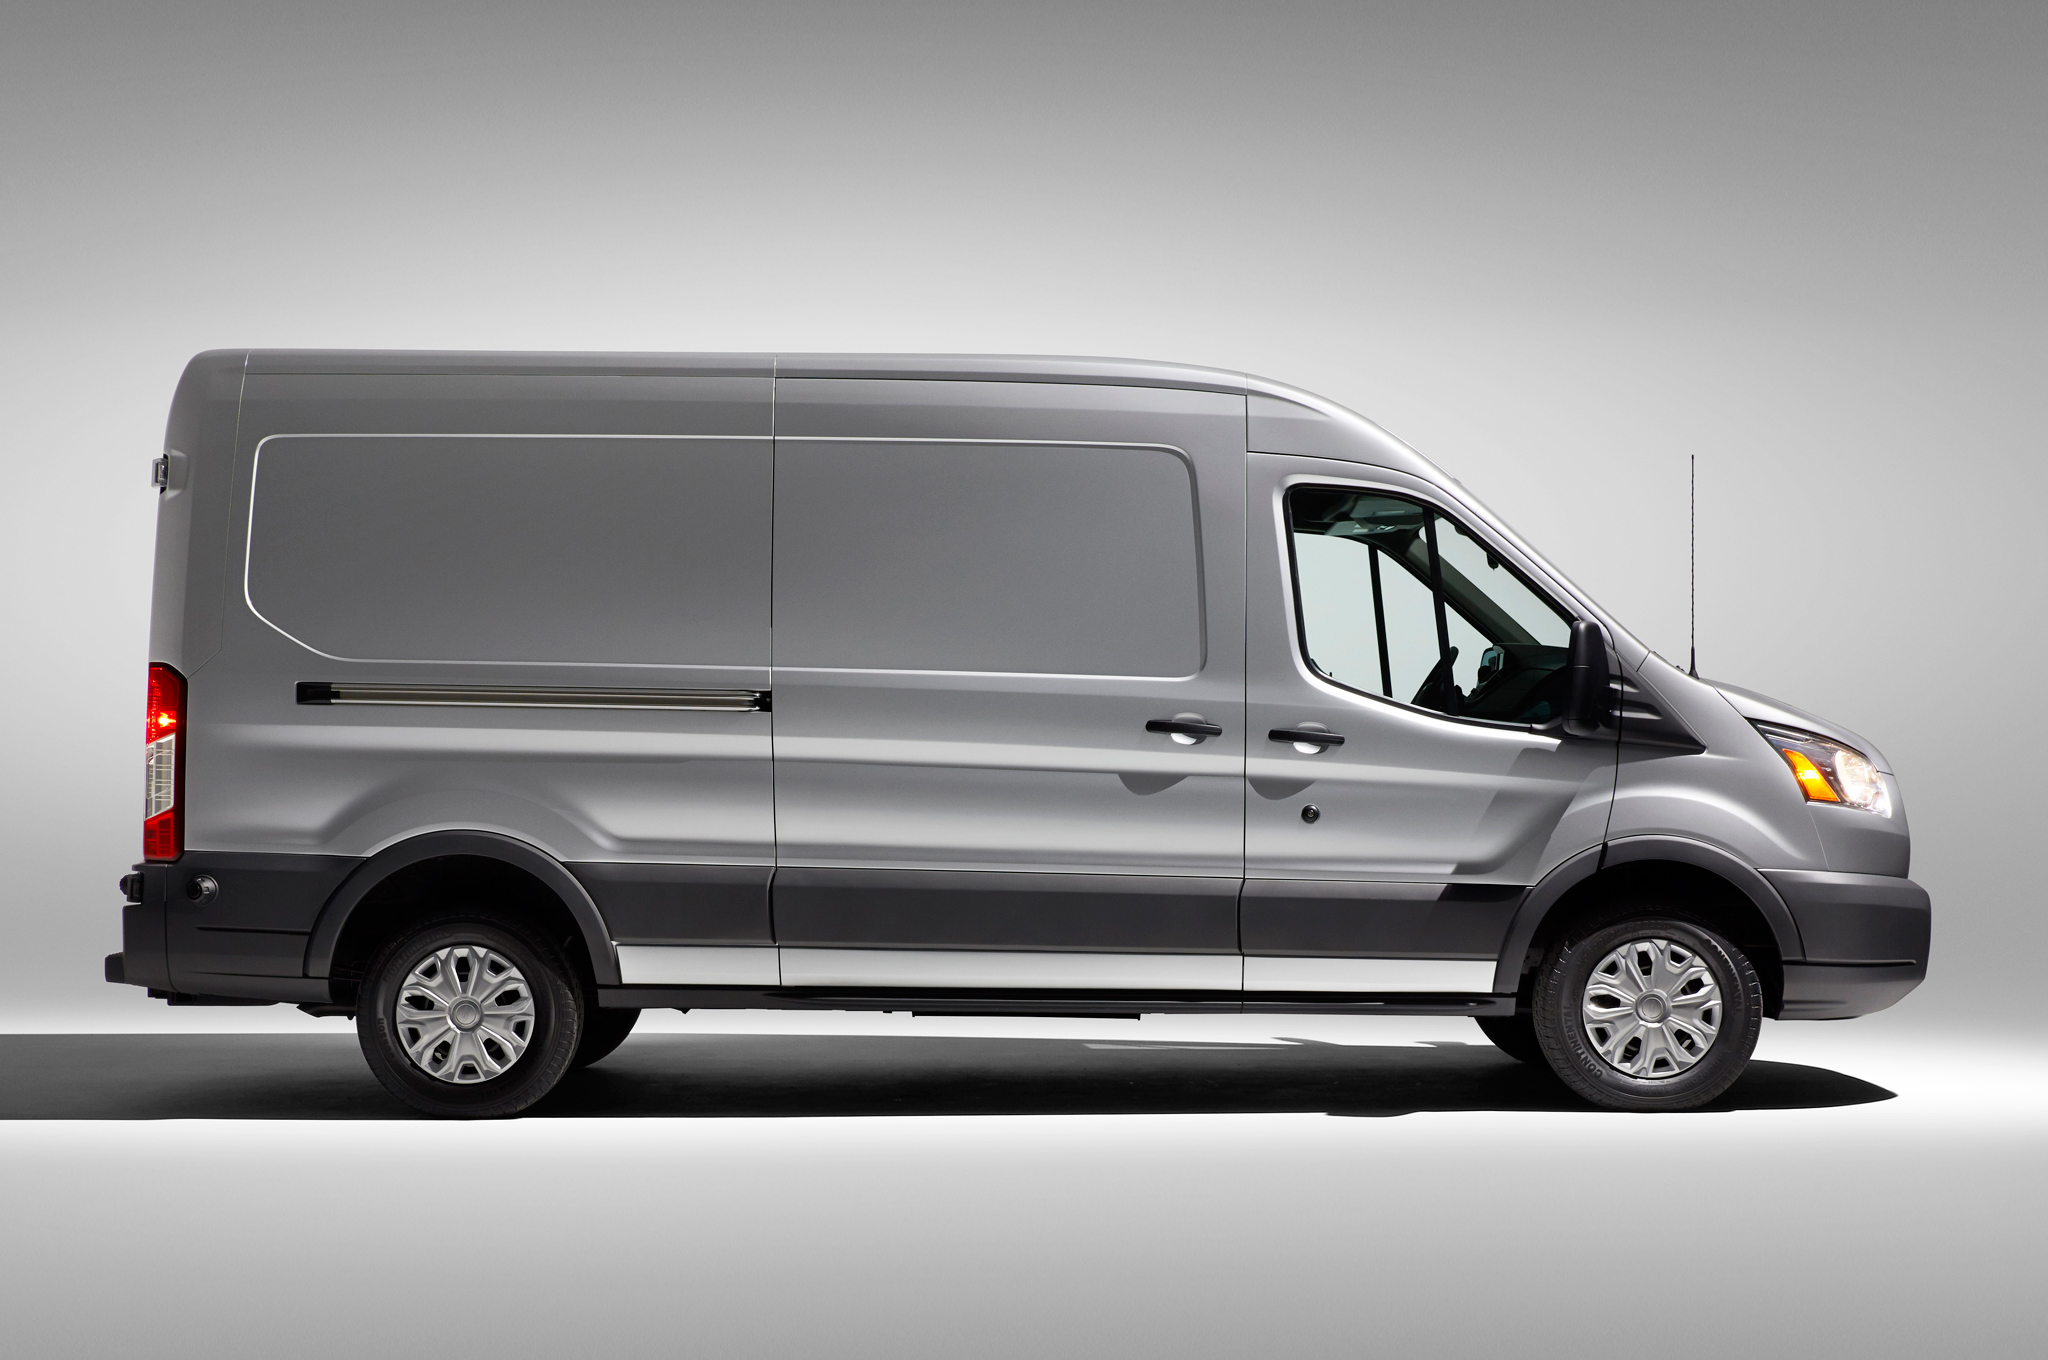 2015 Ford Transit 150 Rear Exterior